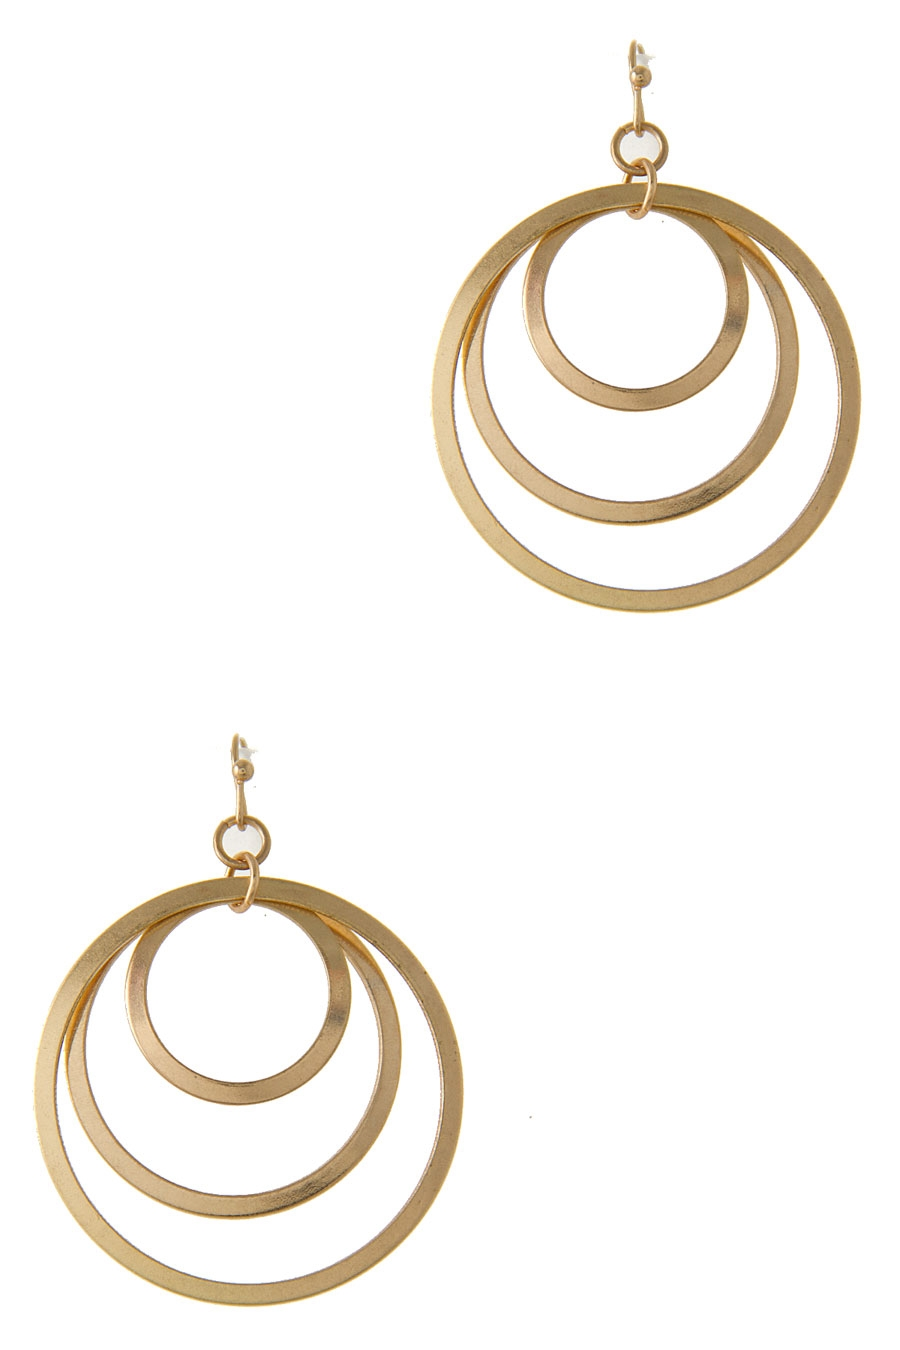 CIRCLE LINK HOOK EARRING - orangeshine.com